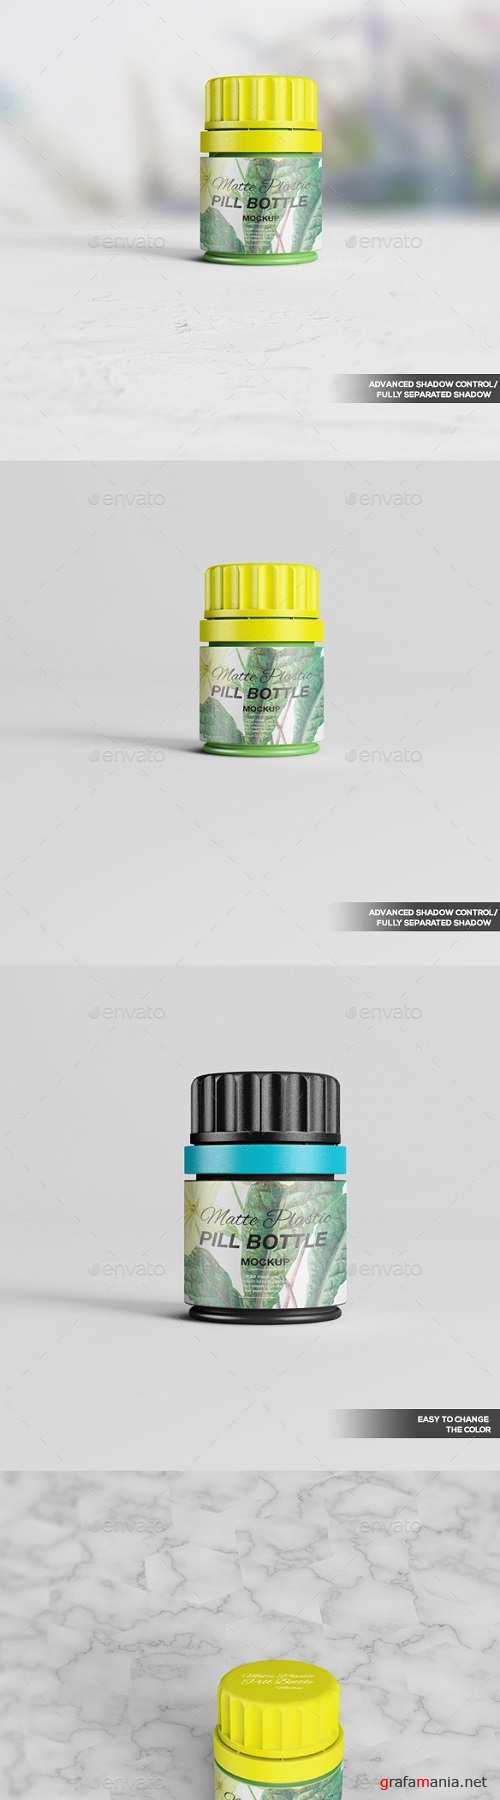 Matte Plastic Pill Bottle Mockup 02 20212424